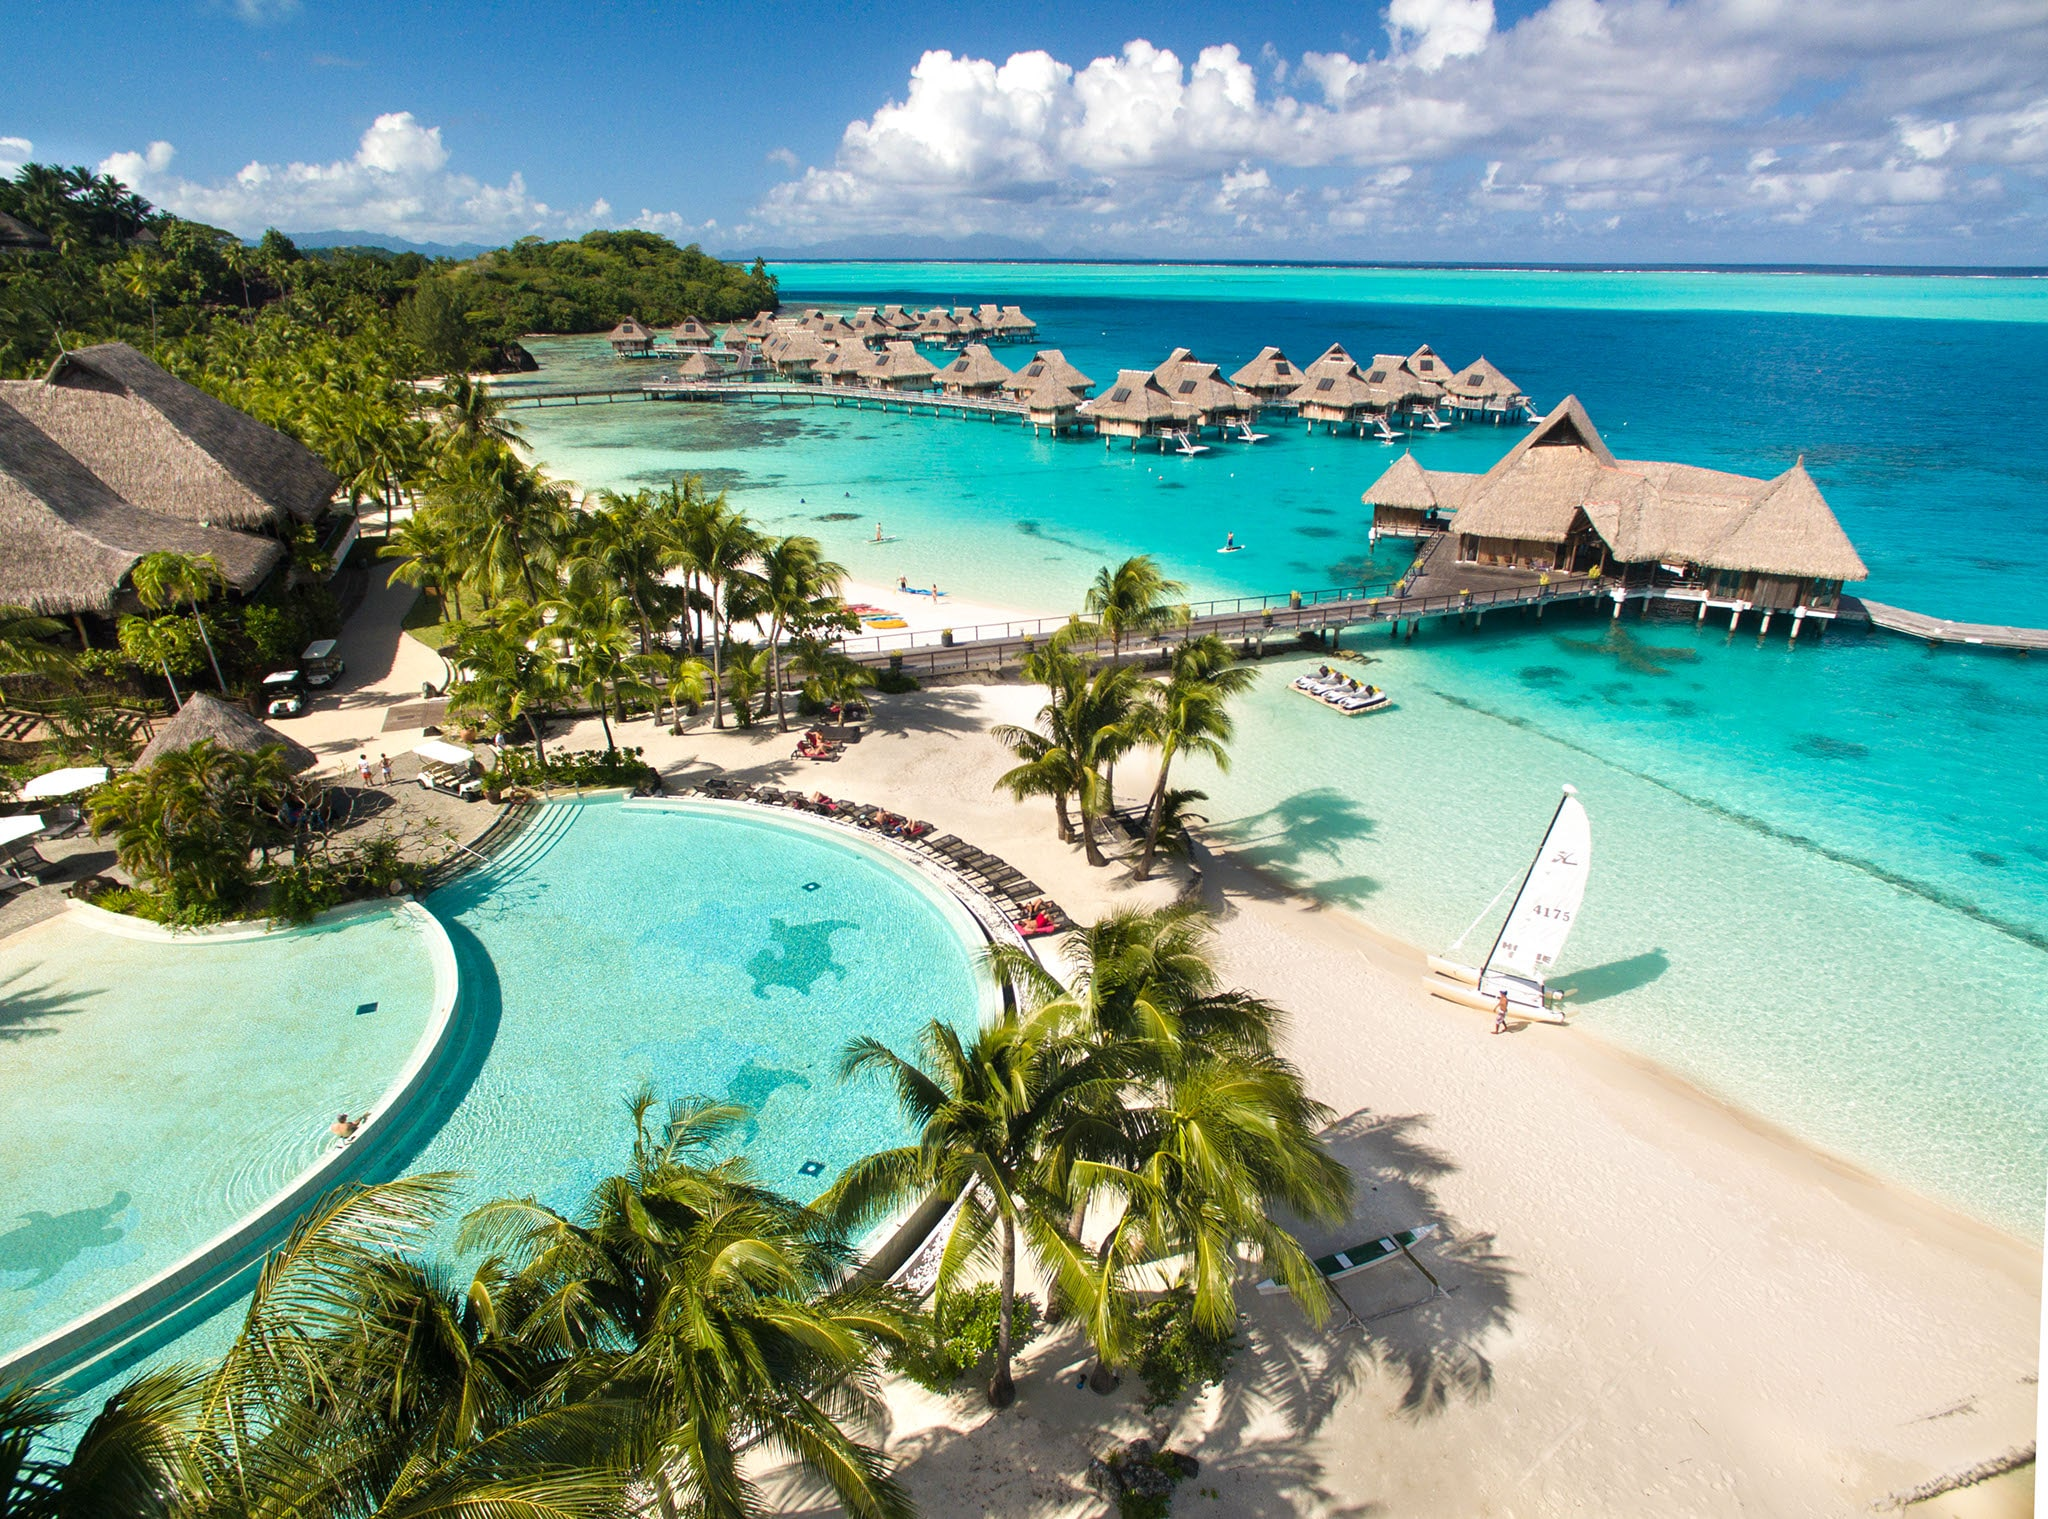 Rebranding of Hilton to Conrad Bora Bora - Tahiti Nui Travel